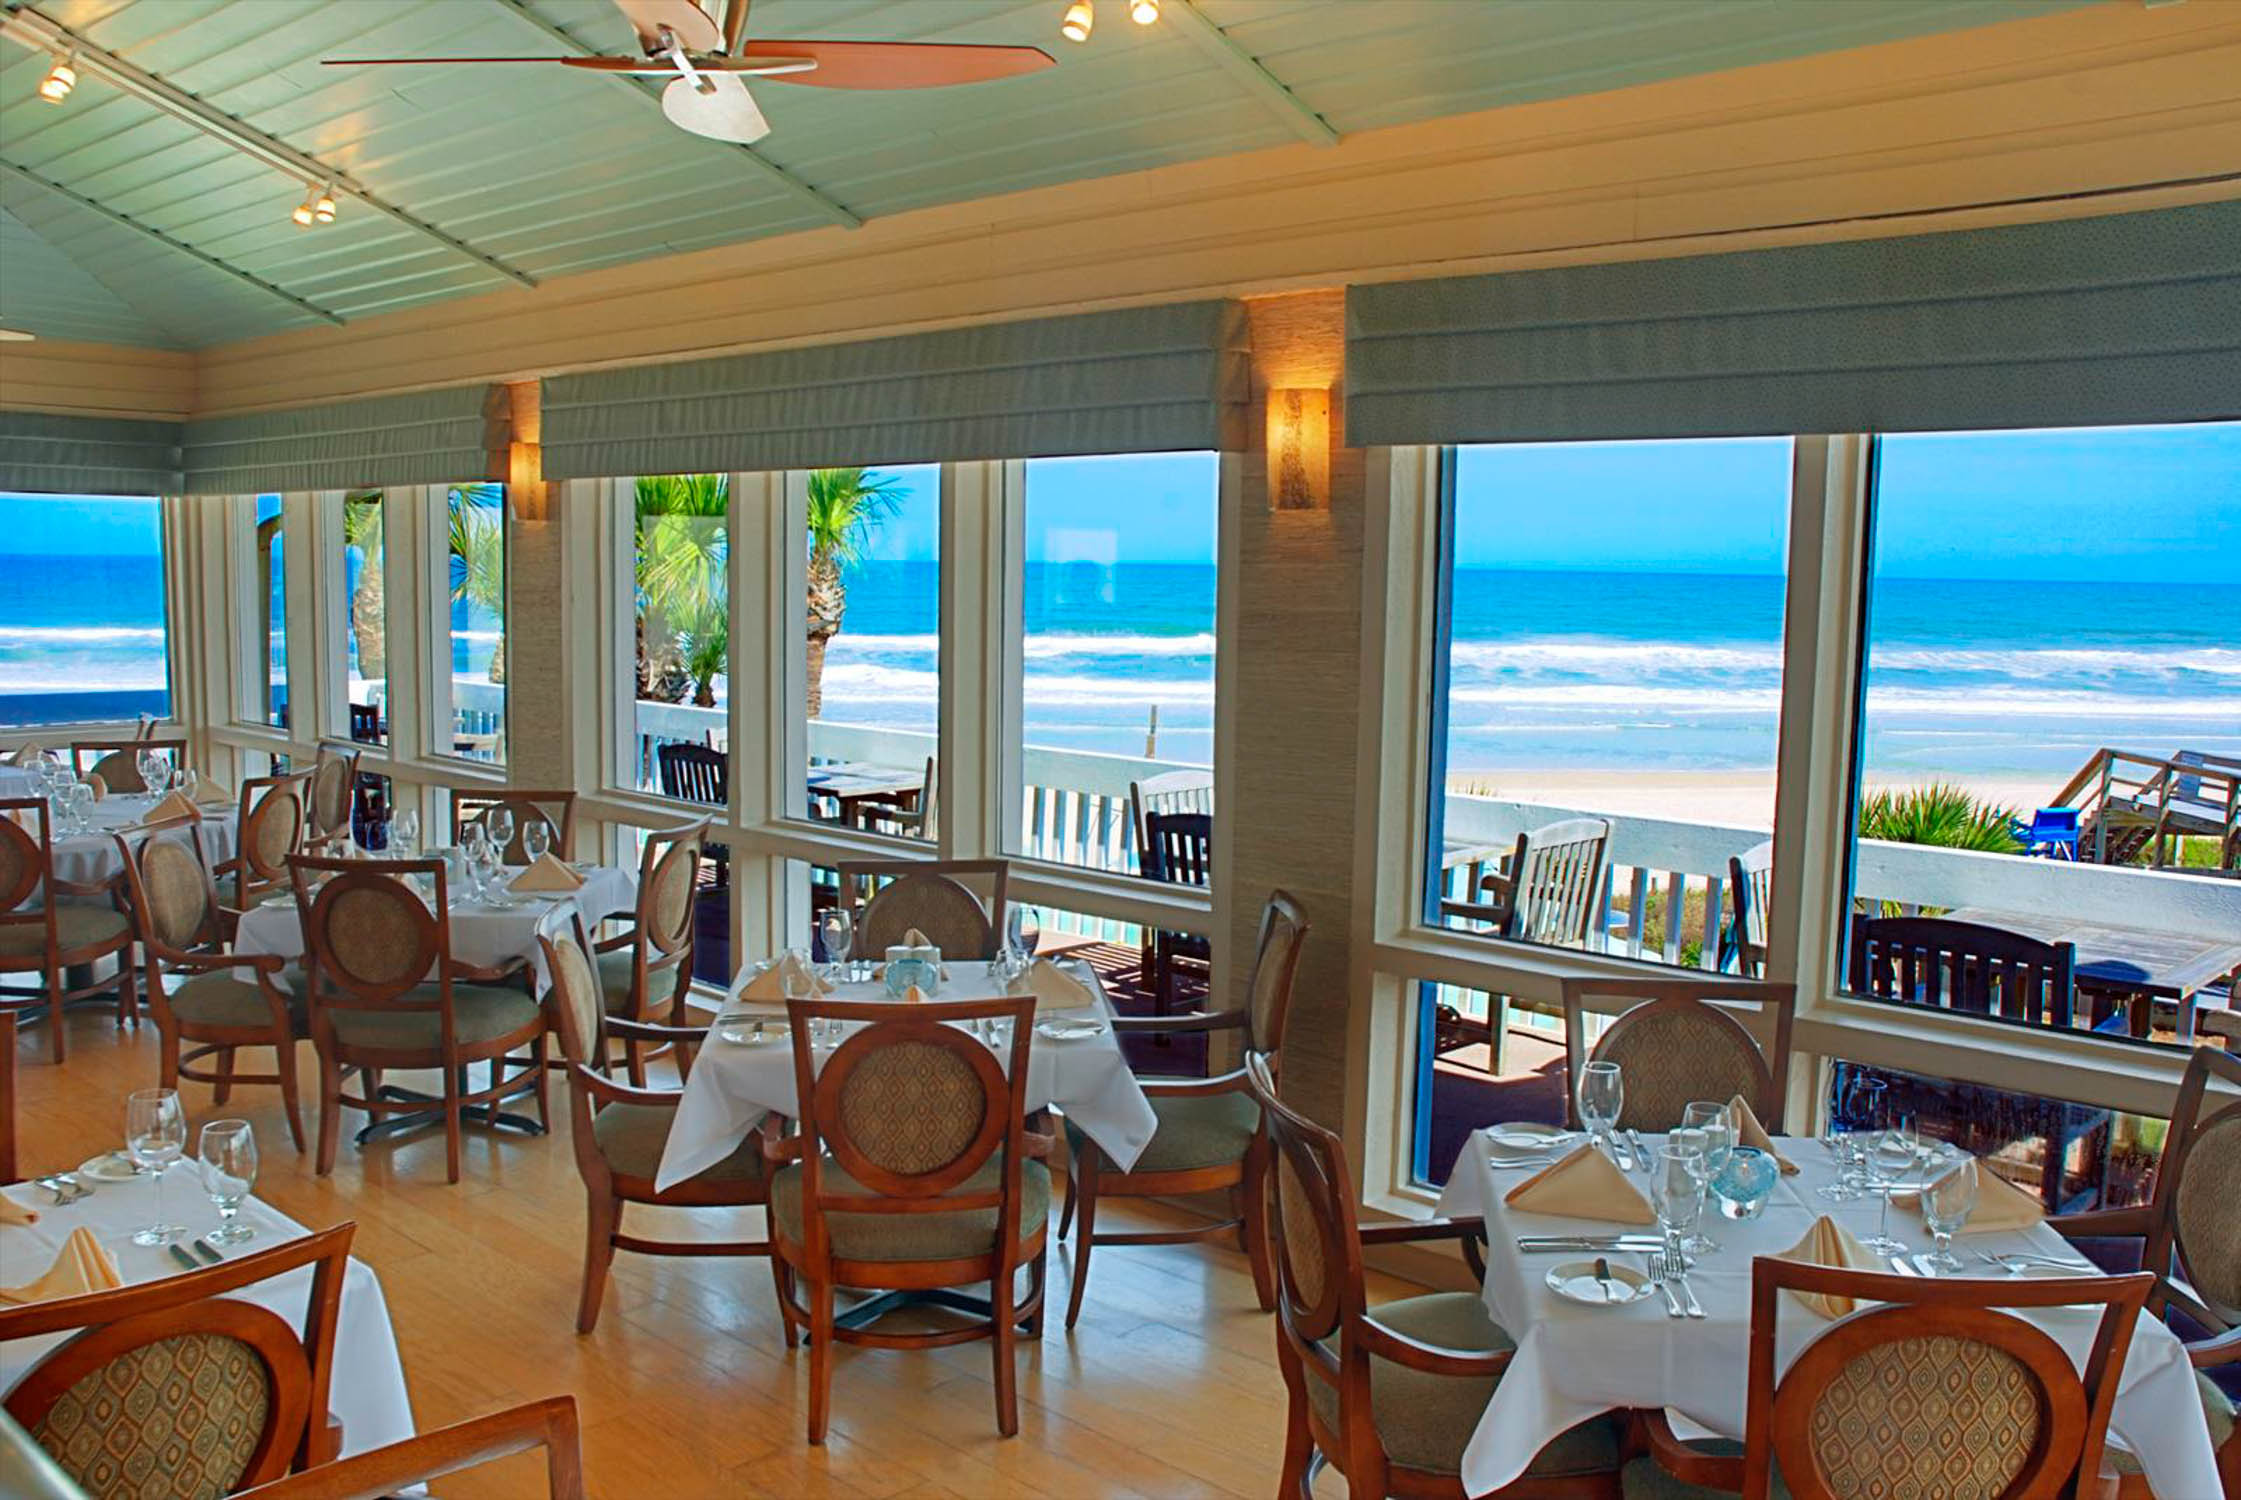 interior of the reef oceanfront restaurant in st augustine